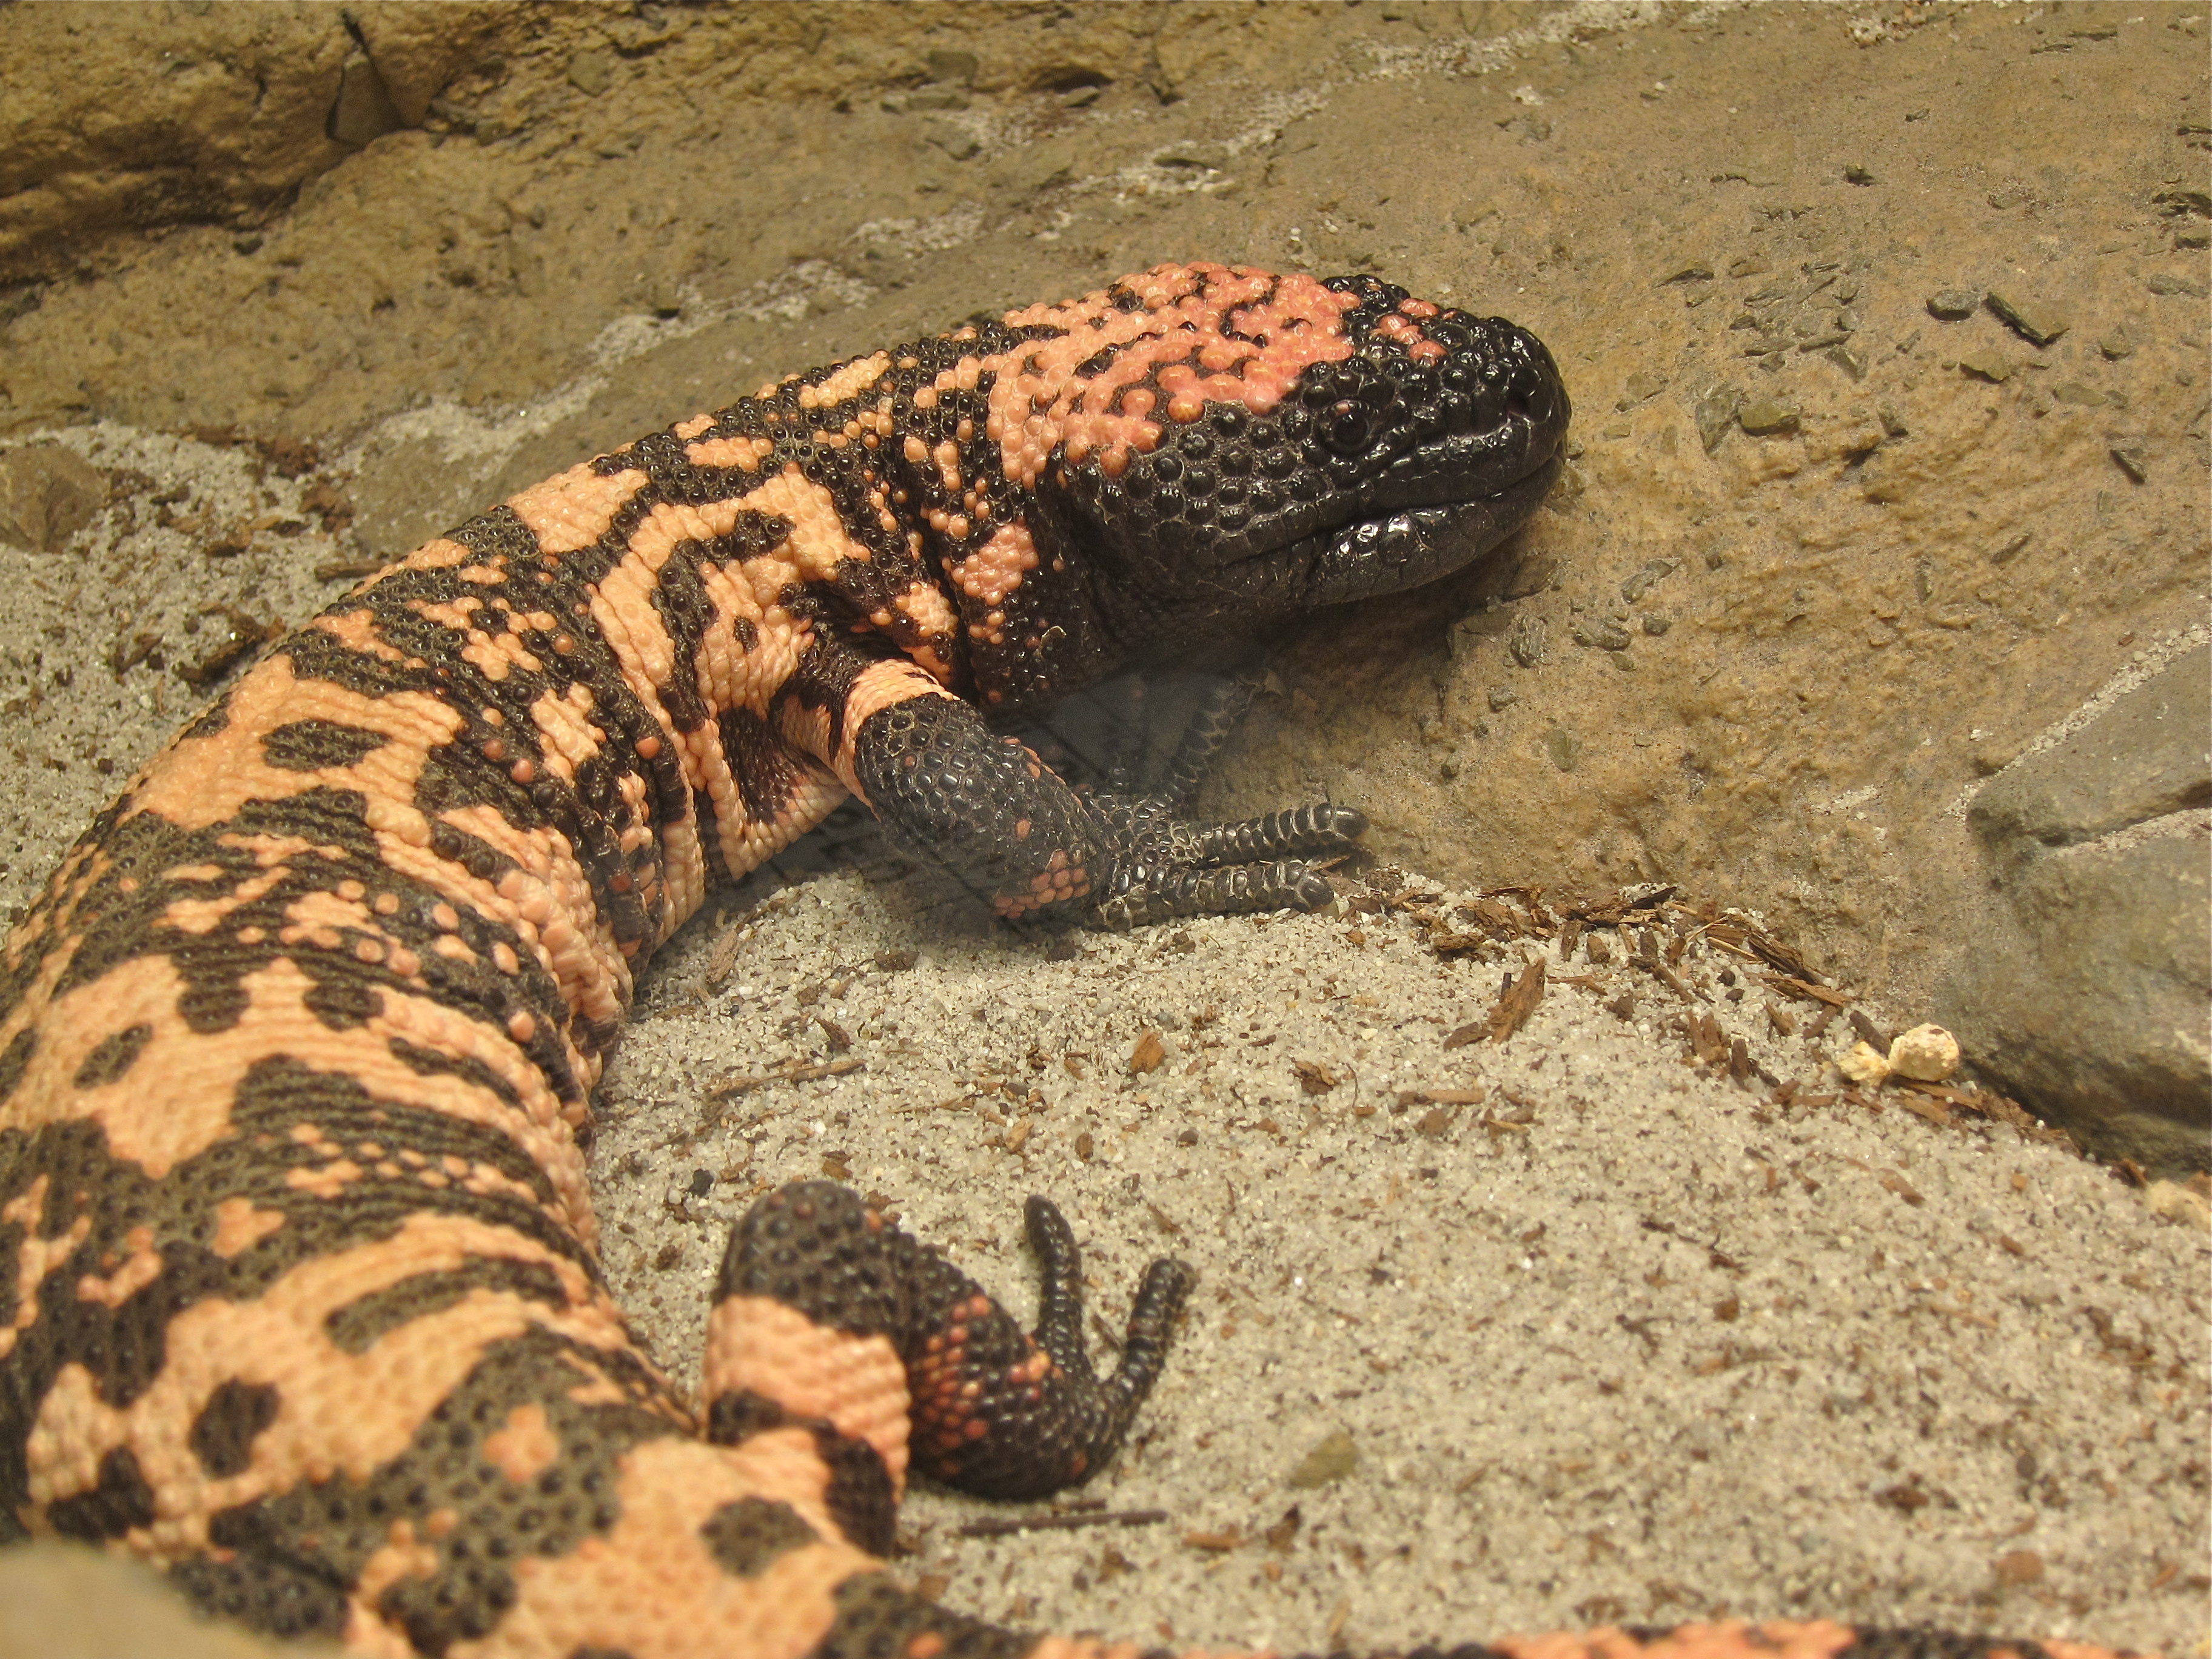 What is the diet of a Gila monster?